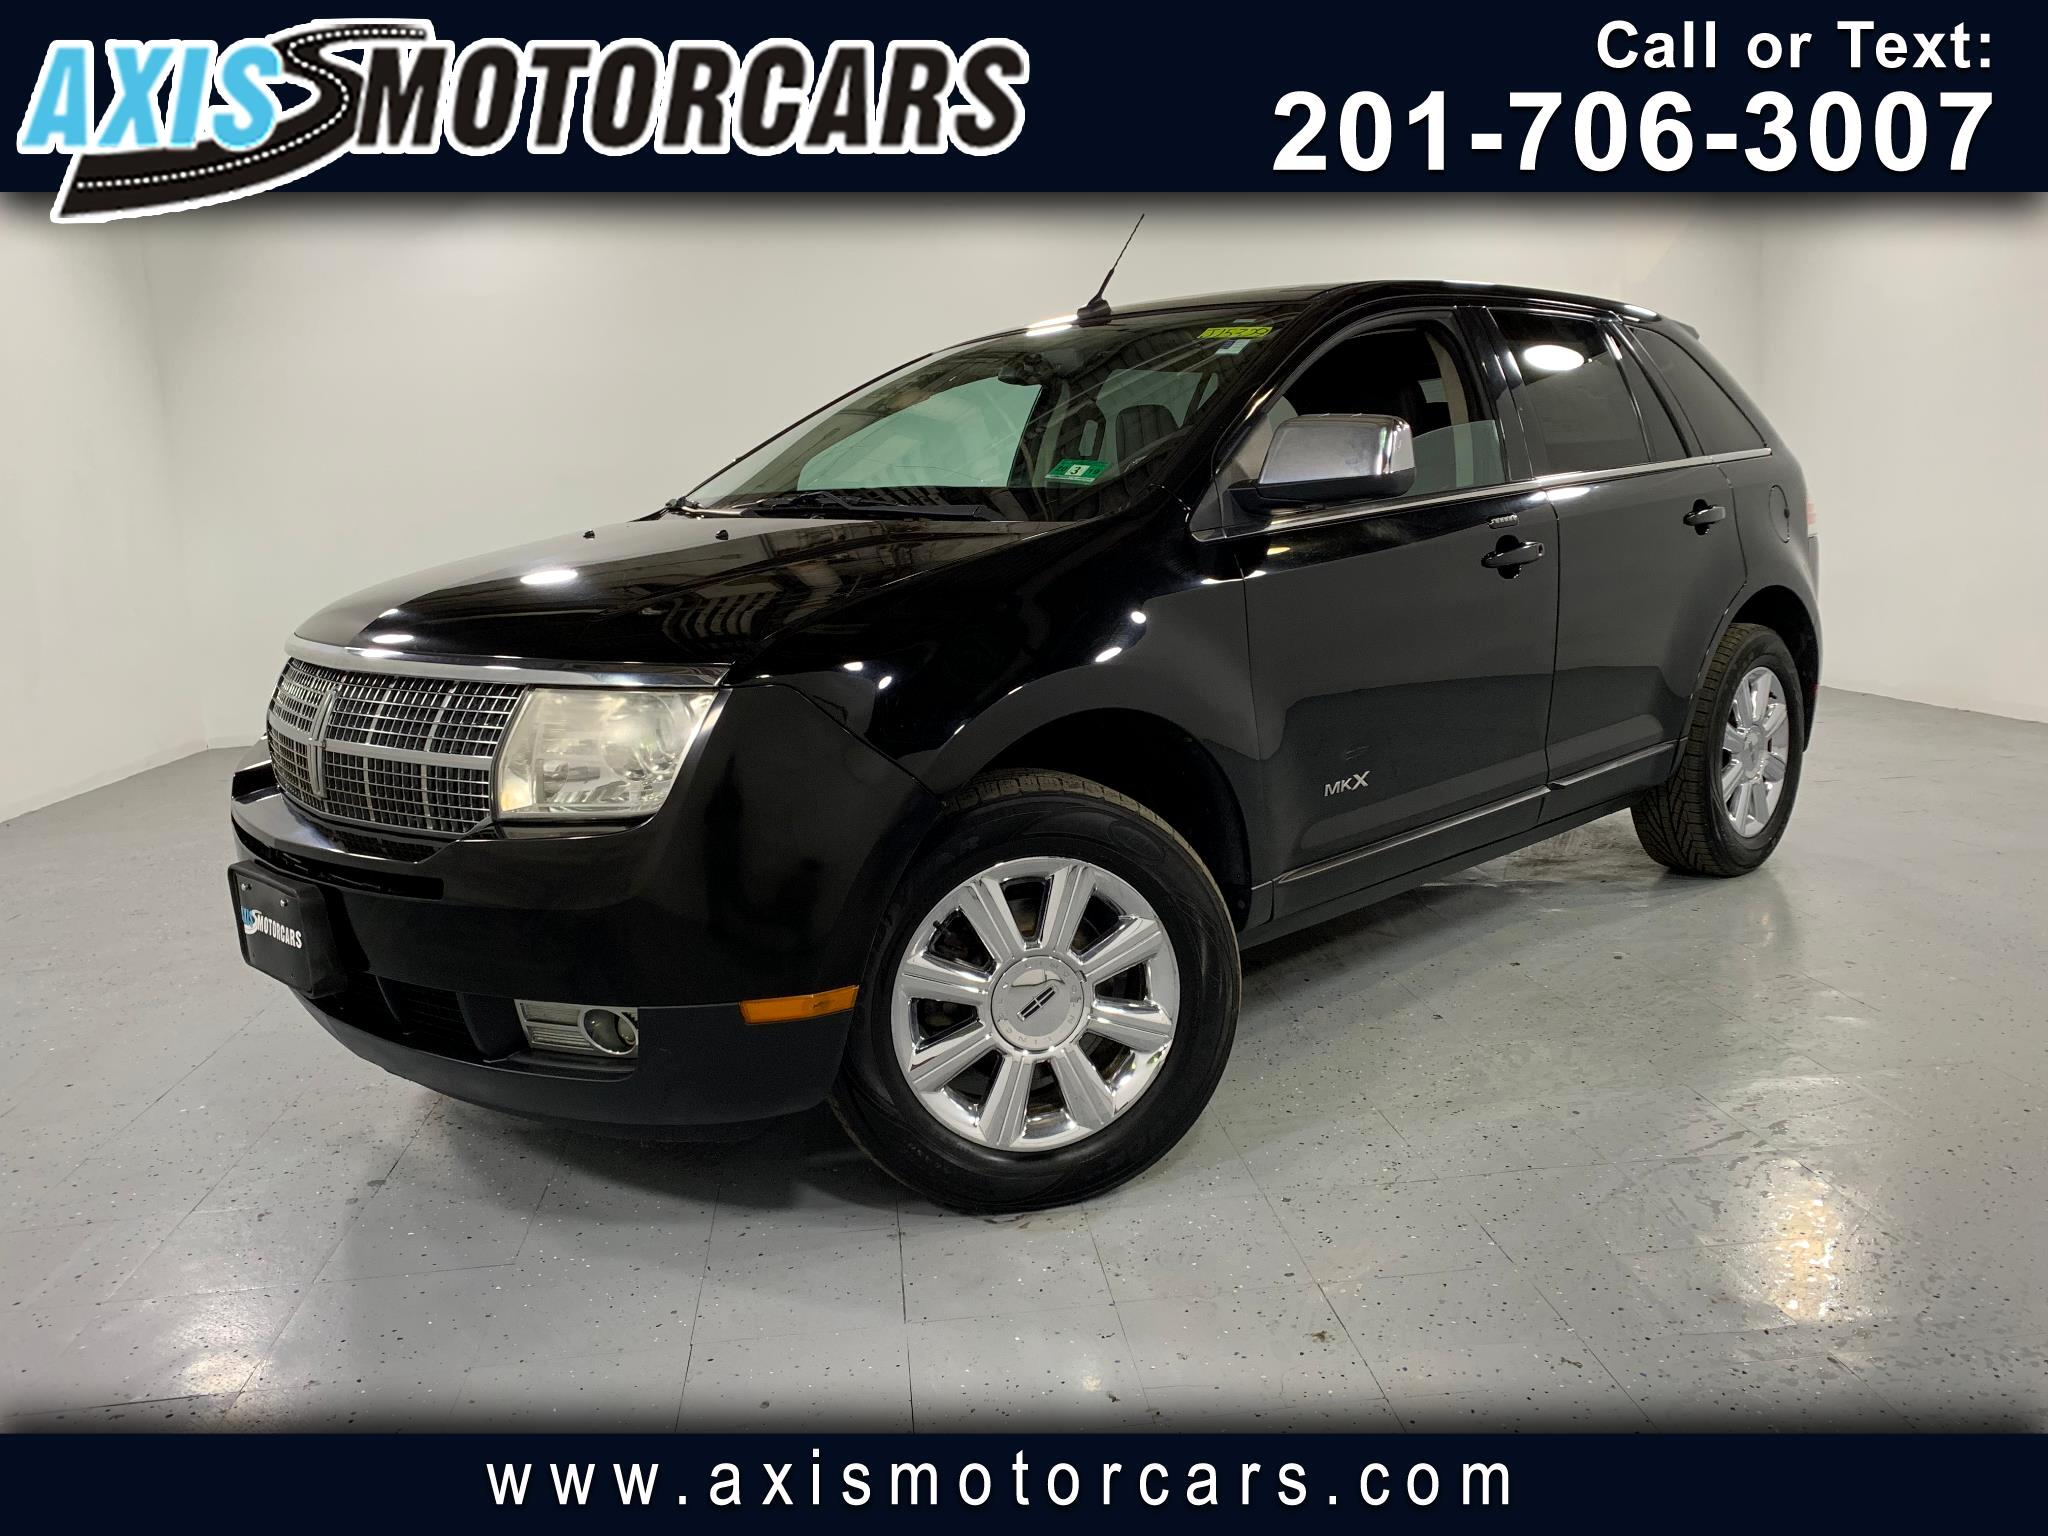 2007 Lincoln MKX w/Navigation Panoramic Roof Leather